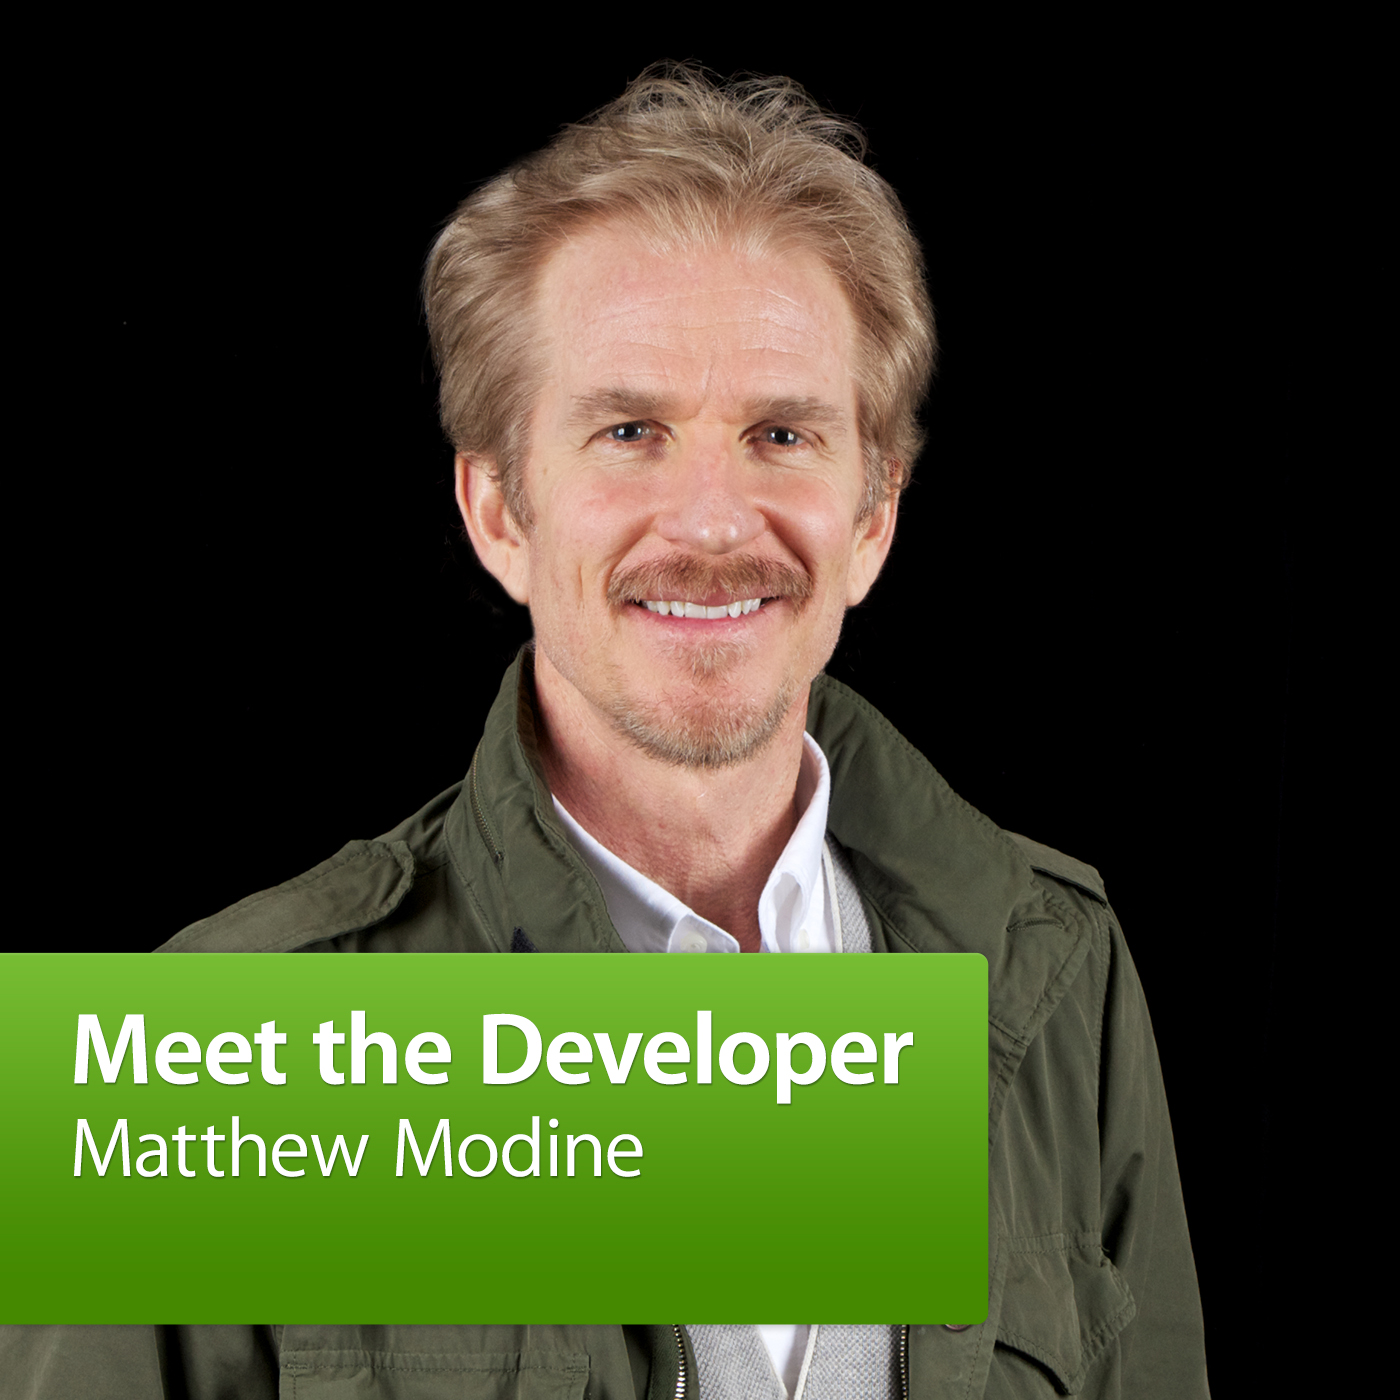 Matthew Modine: Meet the Developer